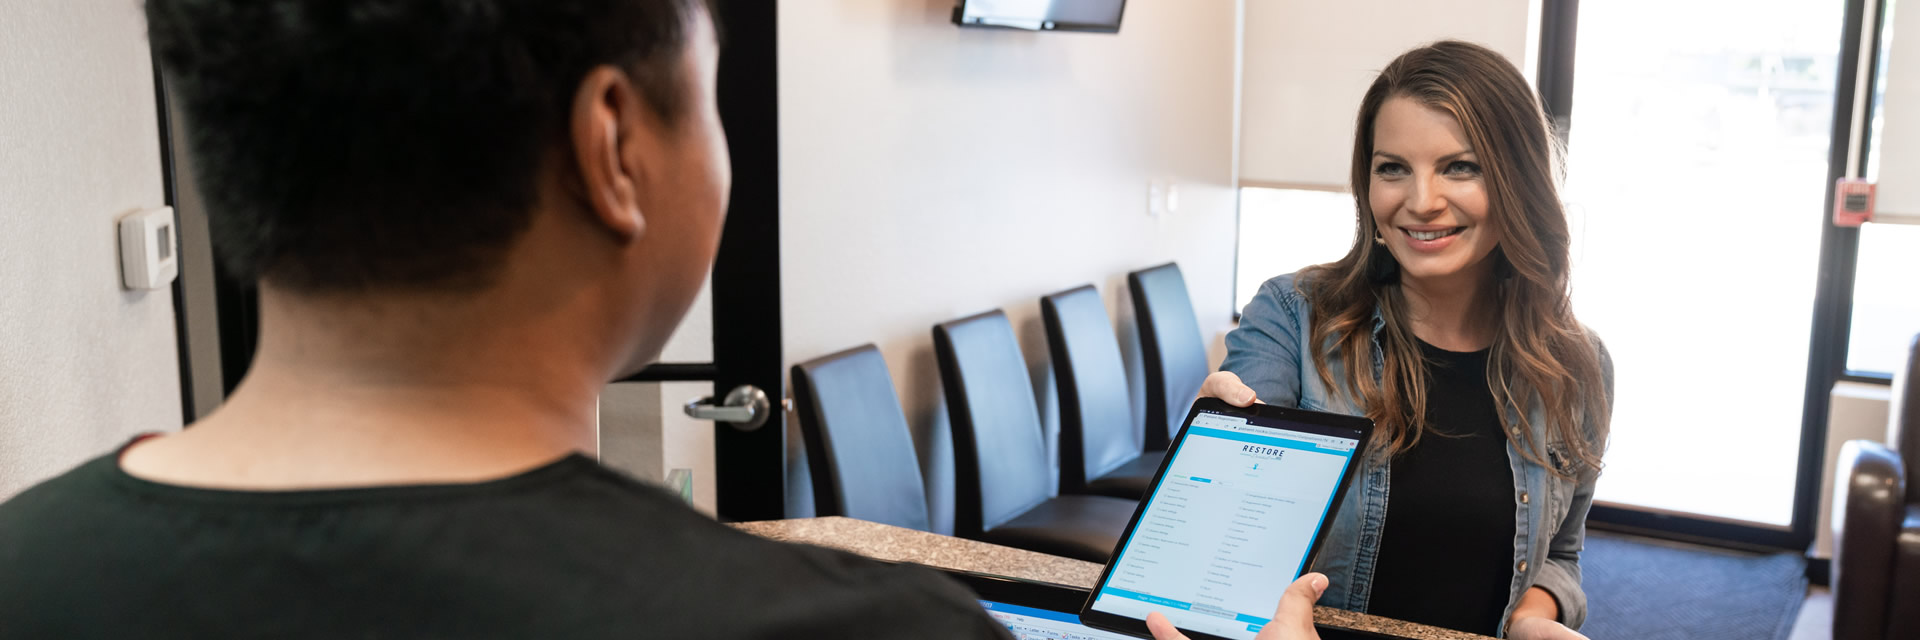 New patient registering at the dentist's office